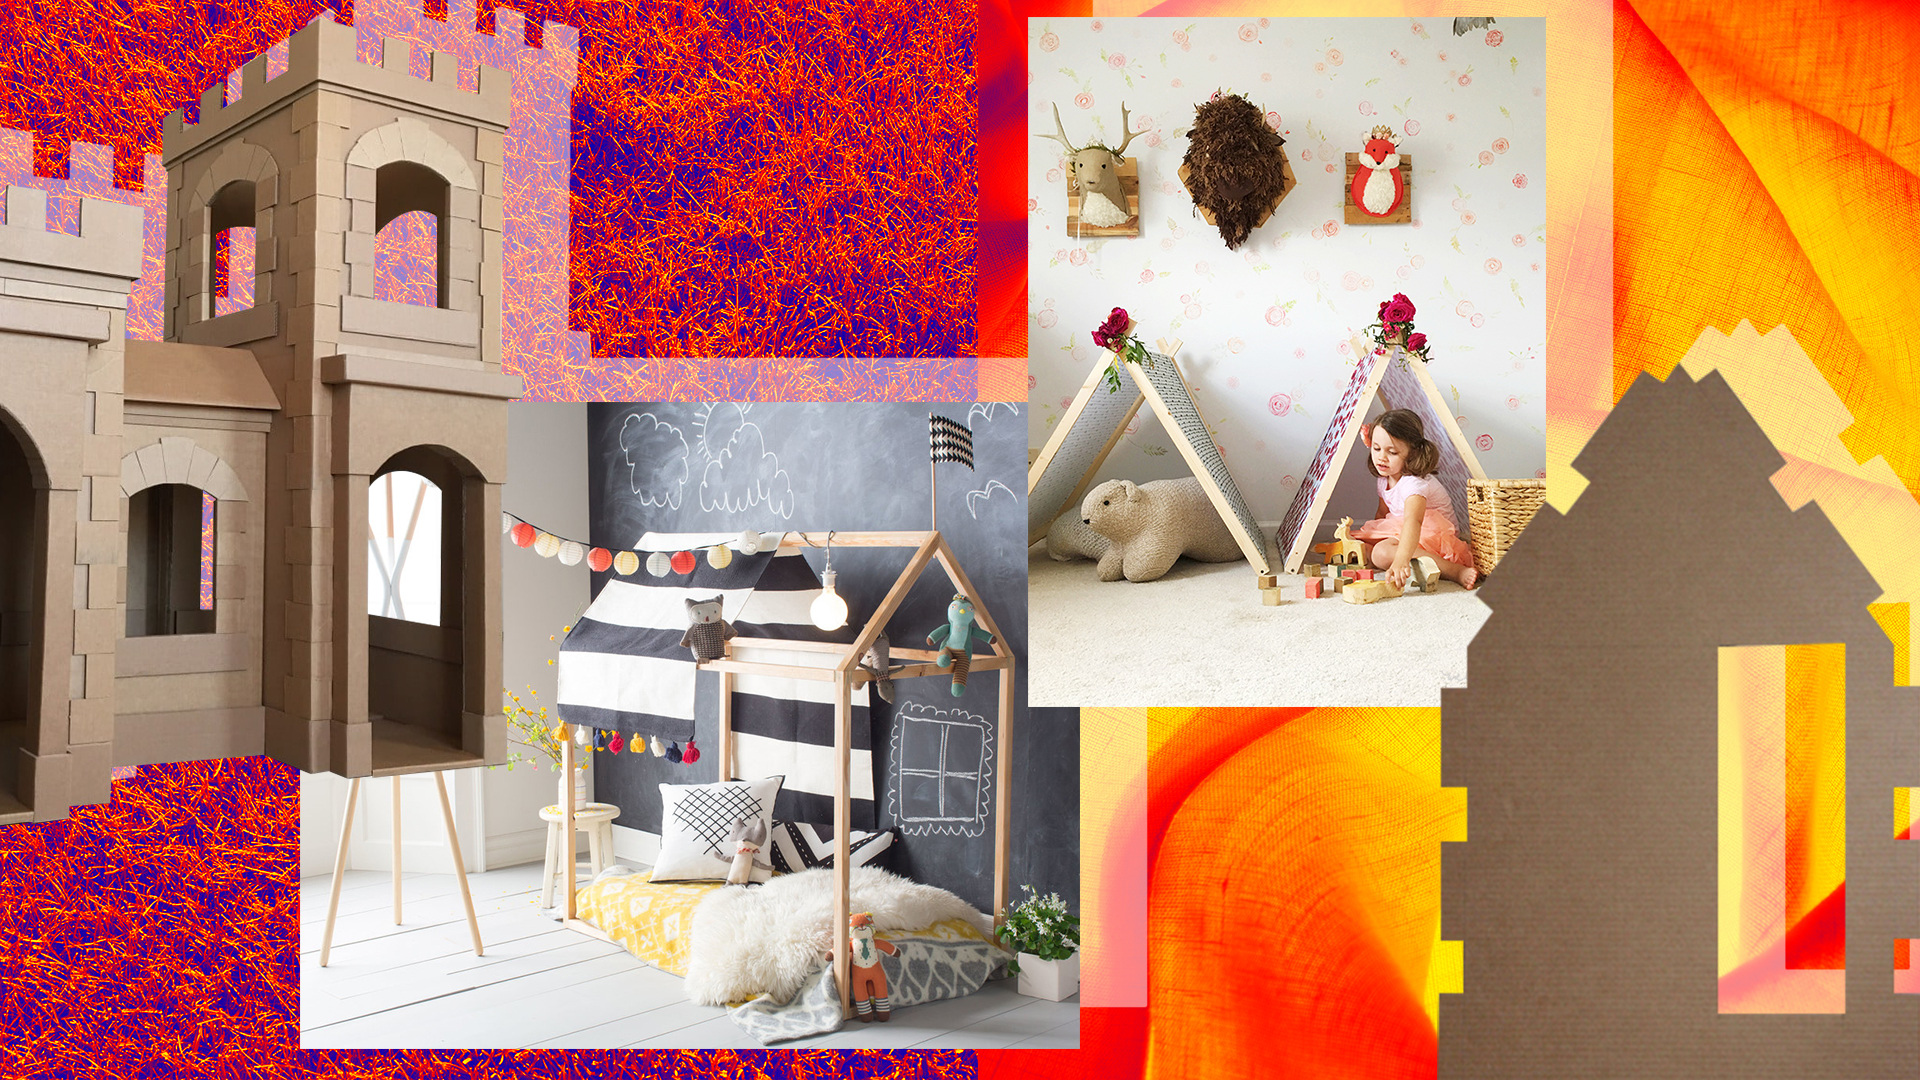 Make Being Stuck at Home Magical With These Forts 'for Your Youngsters' (*Wink, Wink*)